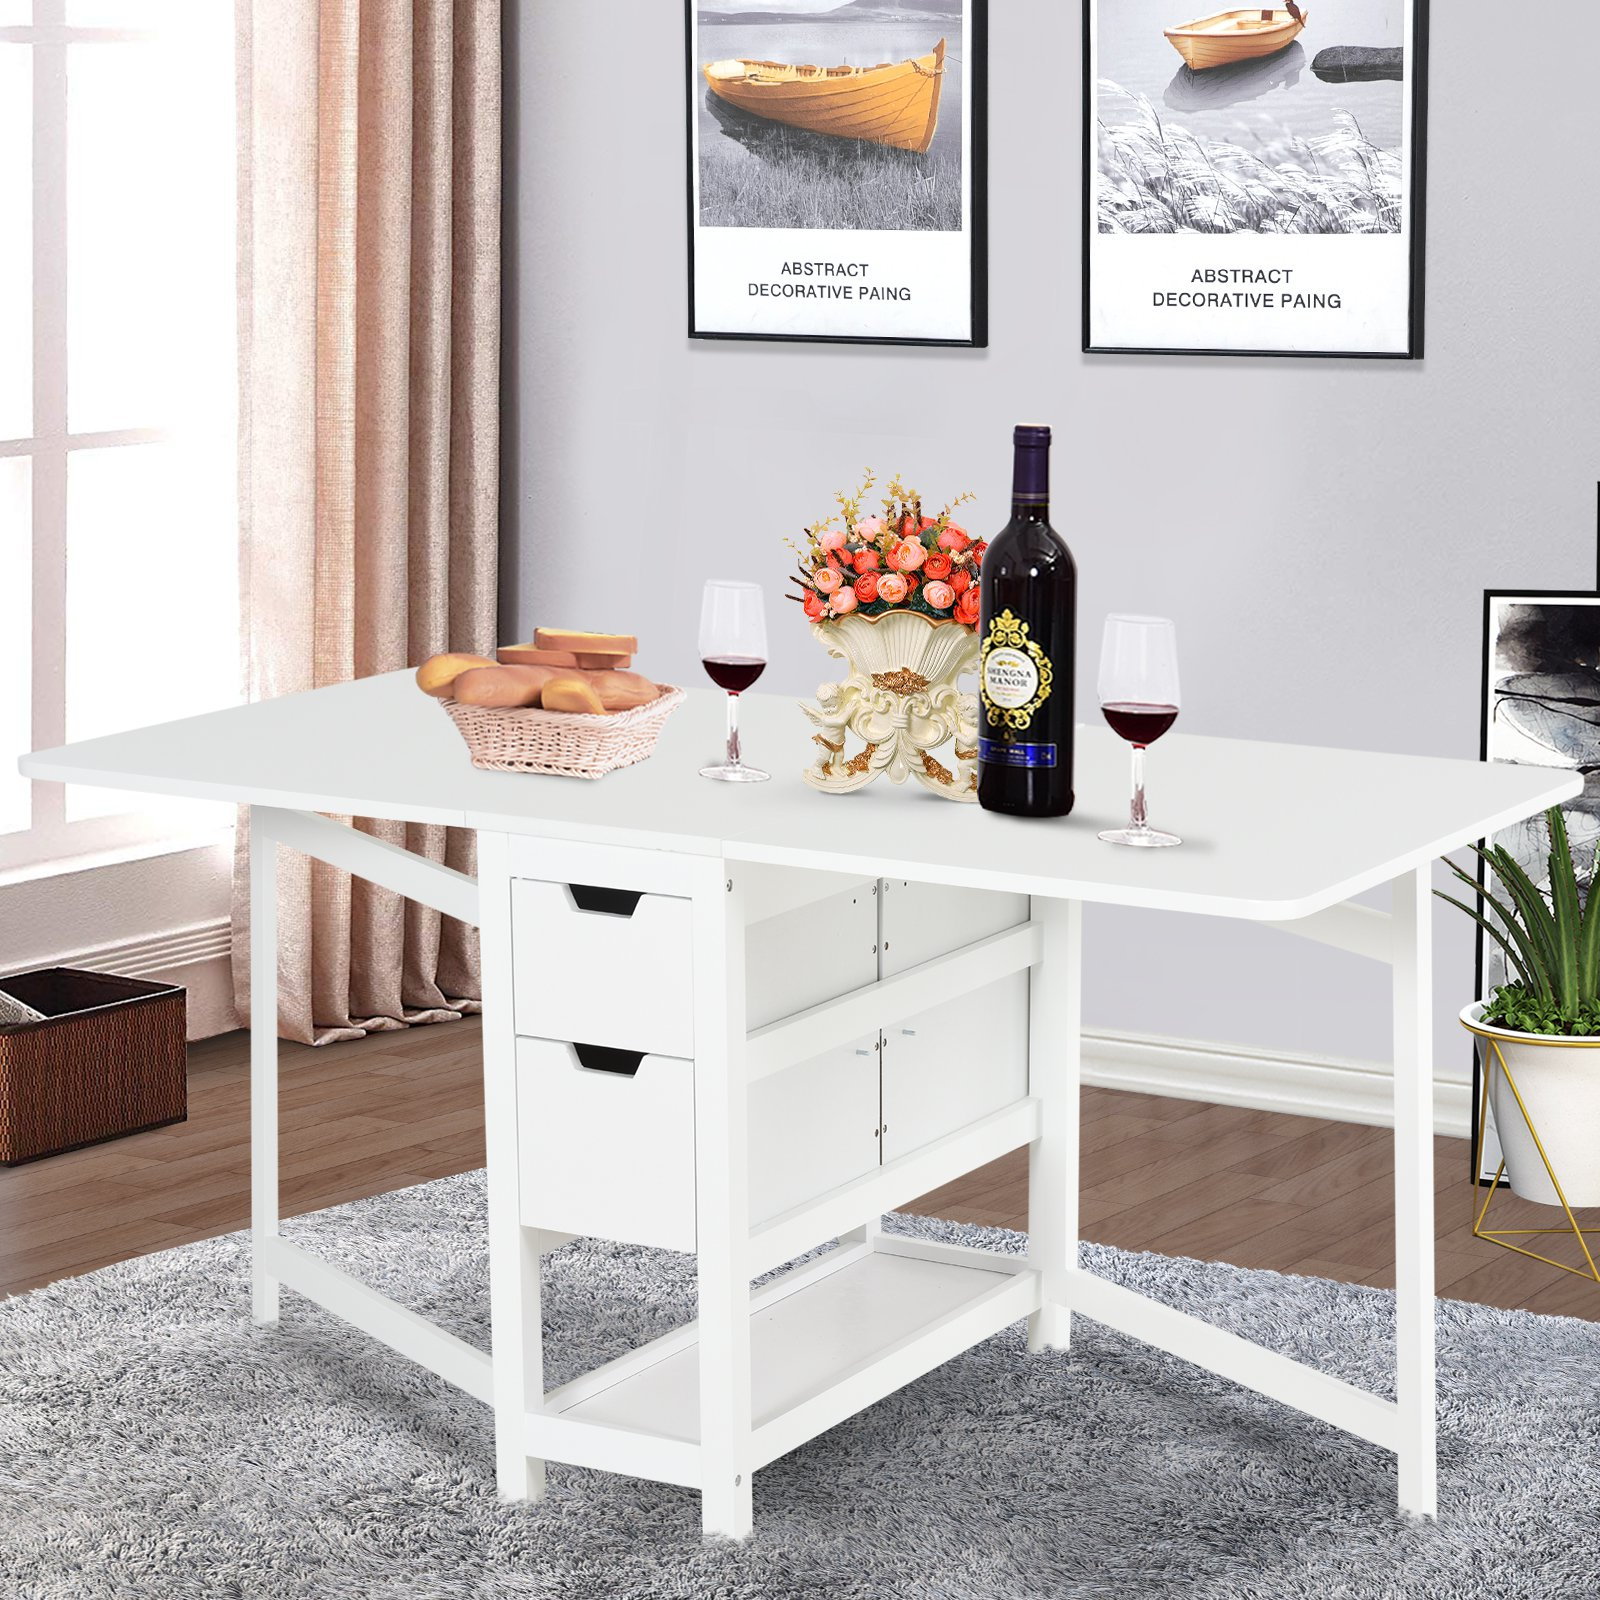 Expandable Dining Table Fold Tabletop White 1 5m 0 59 12 W Drawer Shelf Walmart Canada